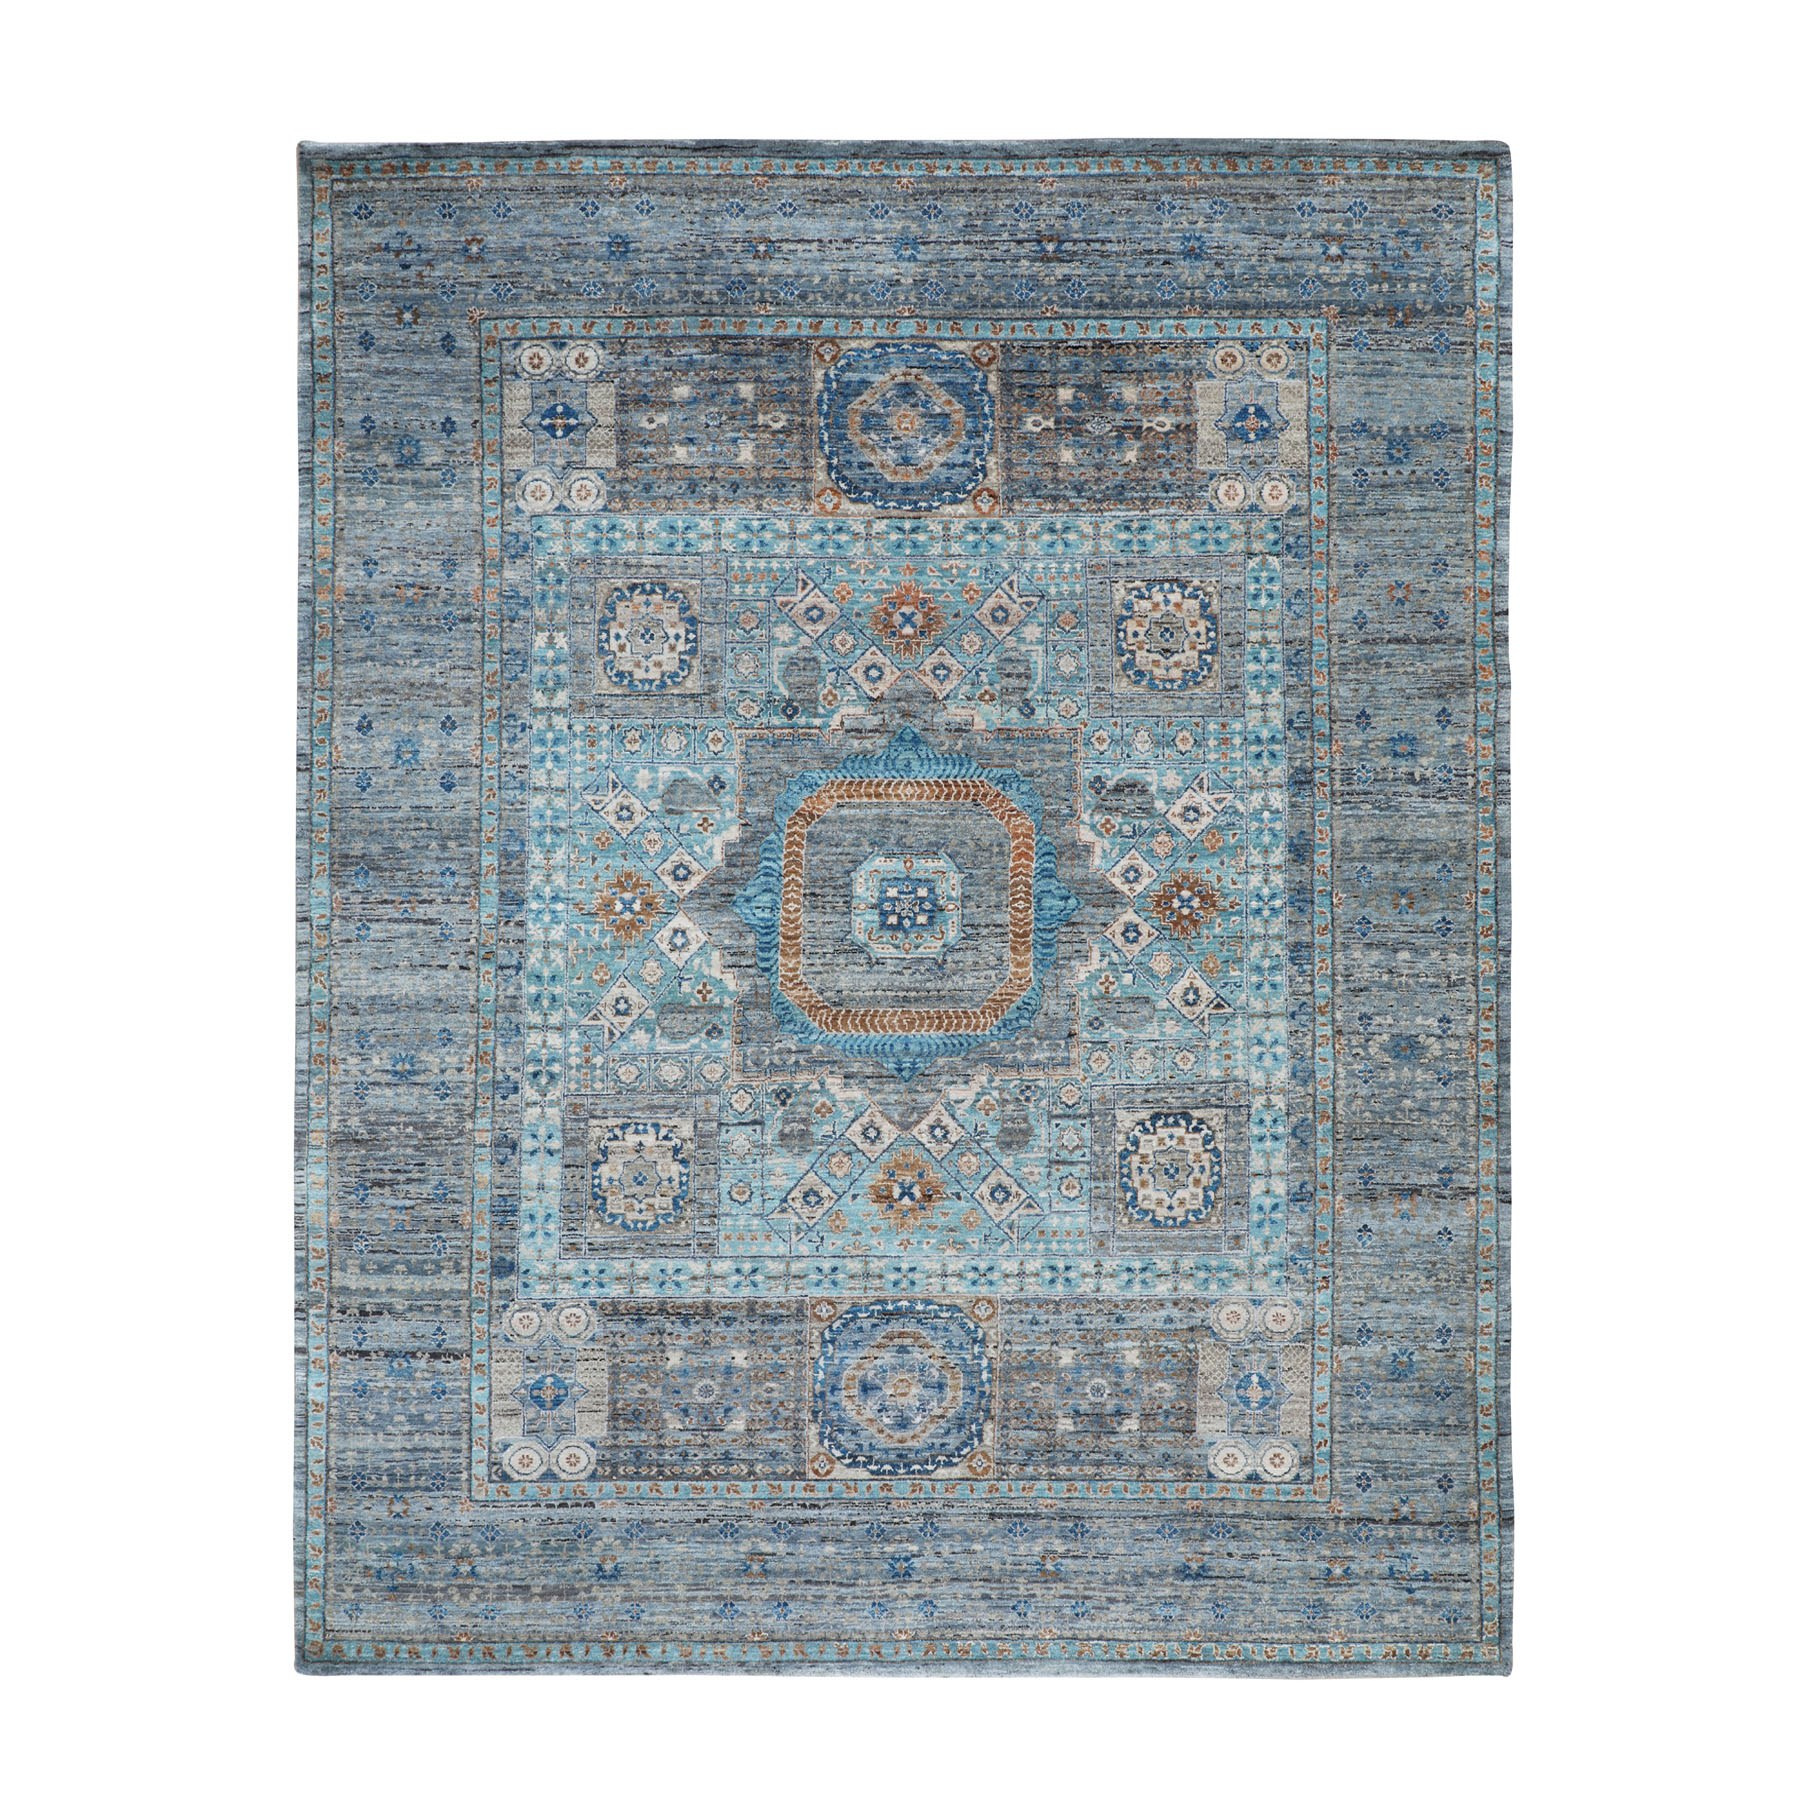 """8'3""""x10'1"""" Blue Pure Wool Mamluk Design hand Knotted Oriental Rug"""